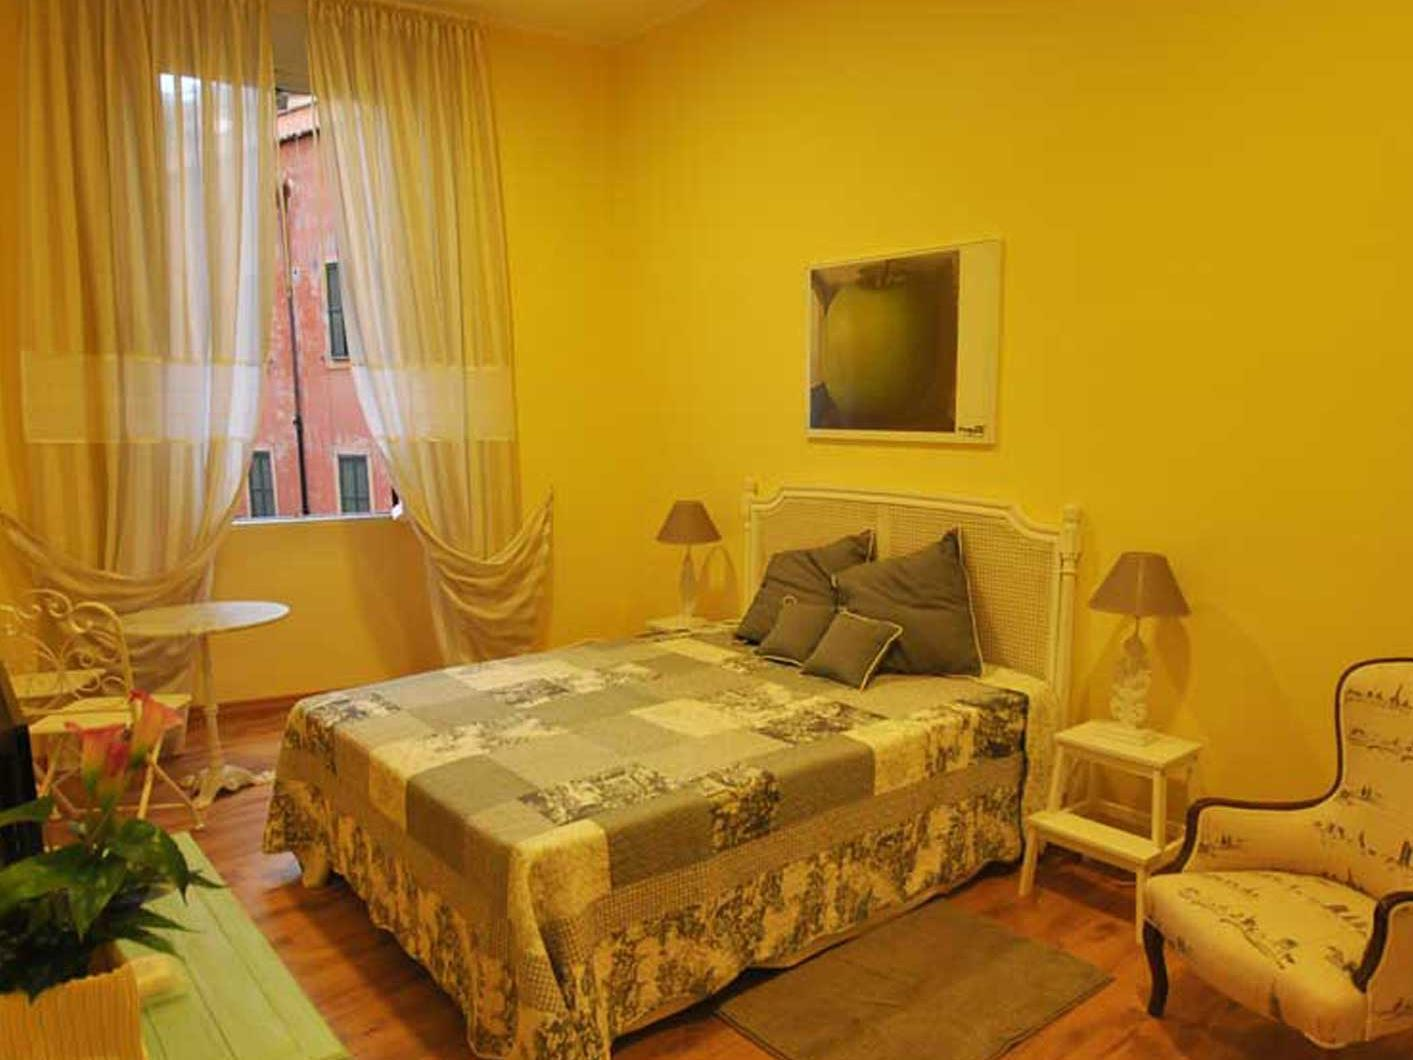 Cameră dublă cu baie privată externă (Double Room With Private External Bathroom)